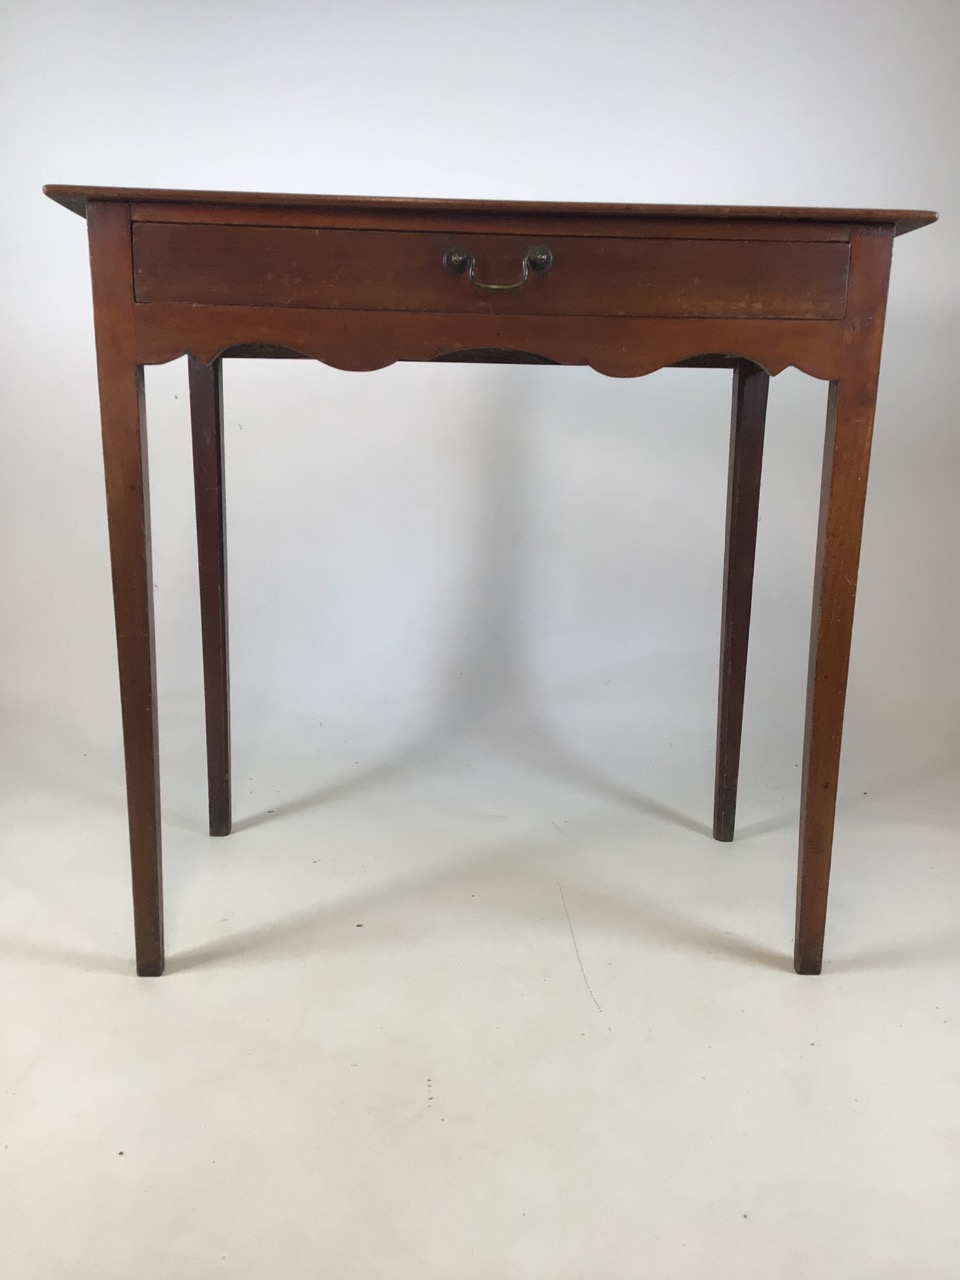 Small antique Georgian style side table with tapered legs with large central drawers and brass